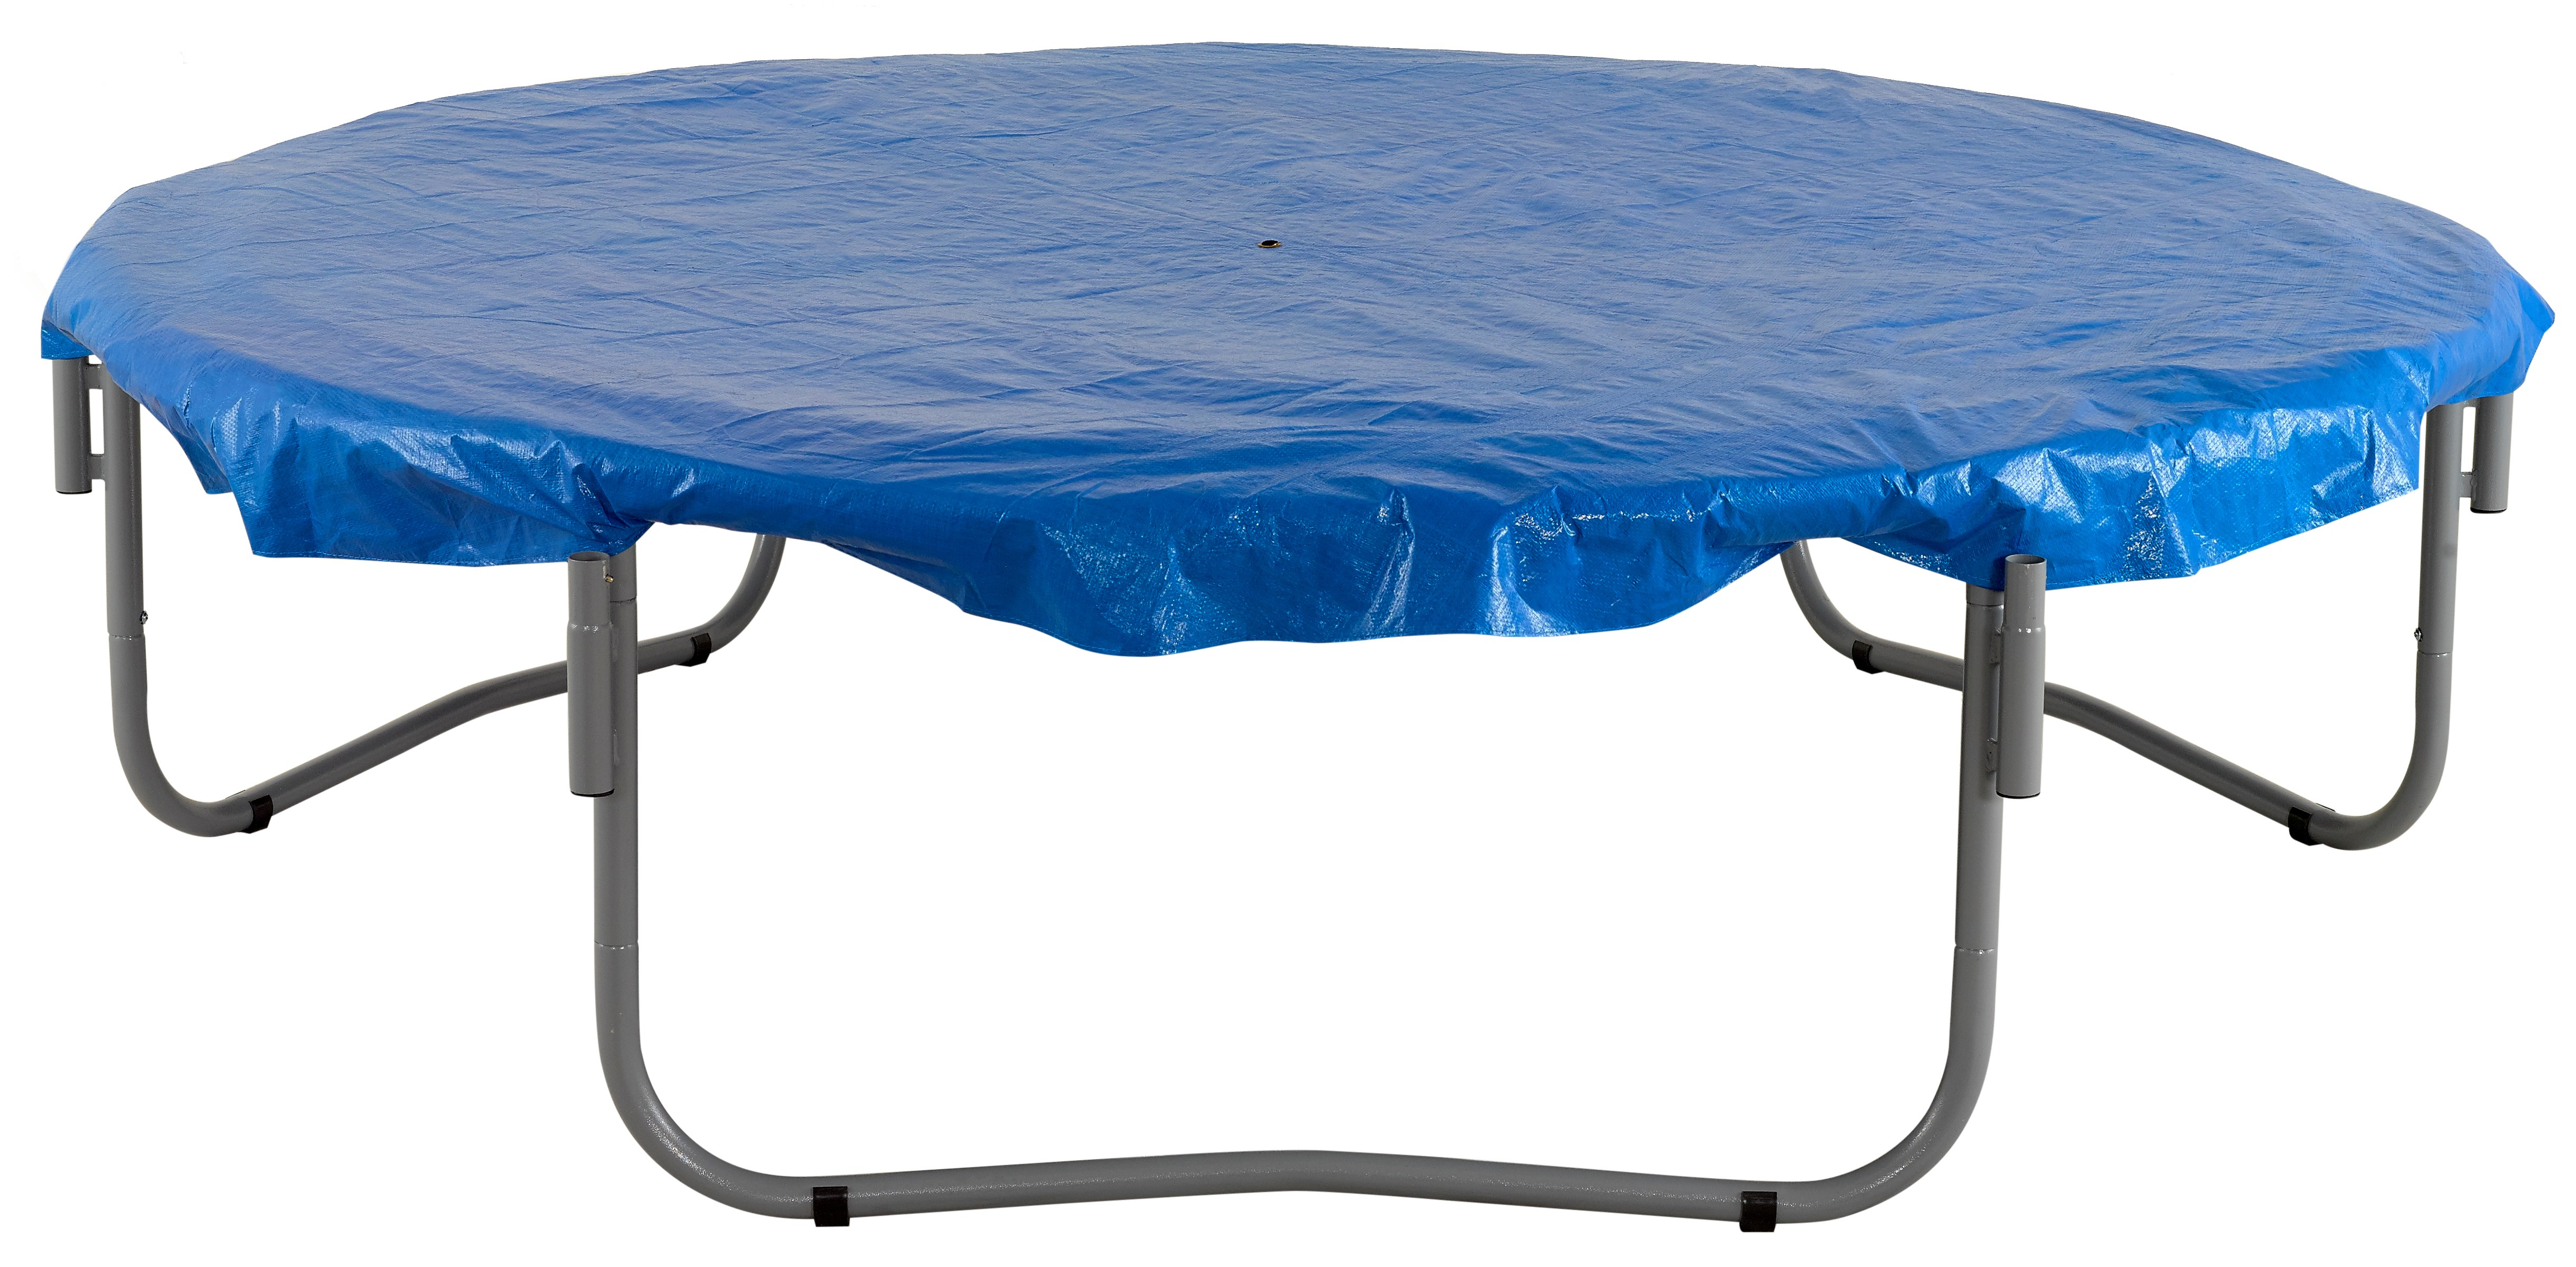 15ft Trampoline Cover - Waterproof and UV Cover for Weather, Wind, Rain Protection of Round Trampolines - Blue